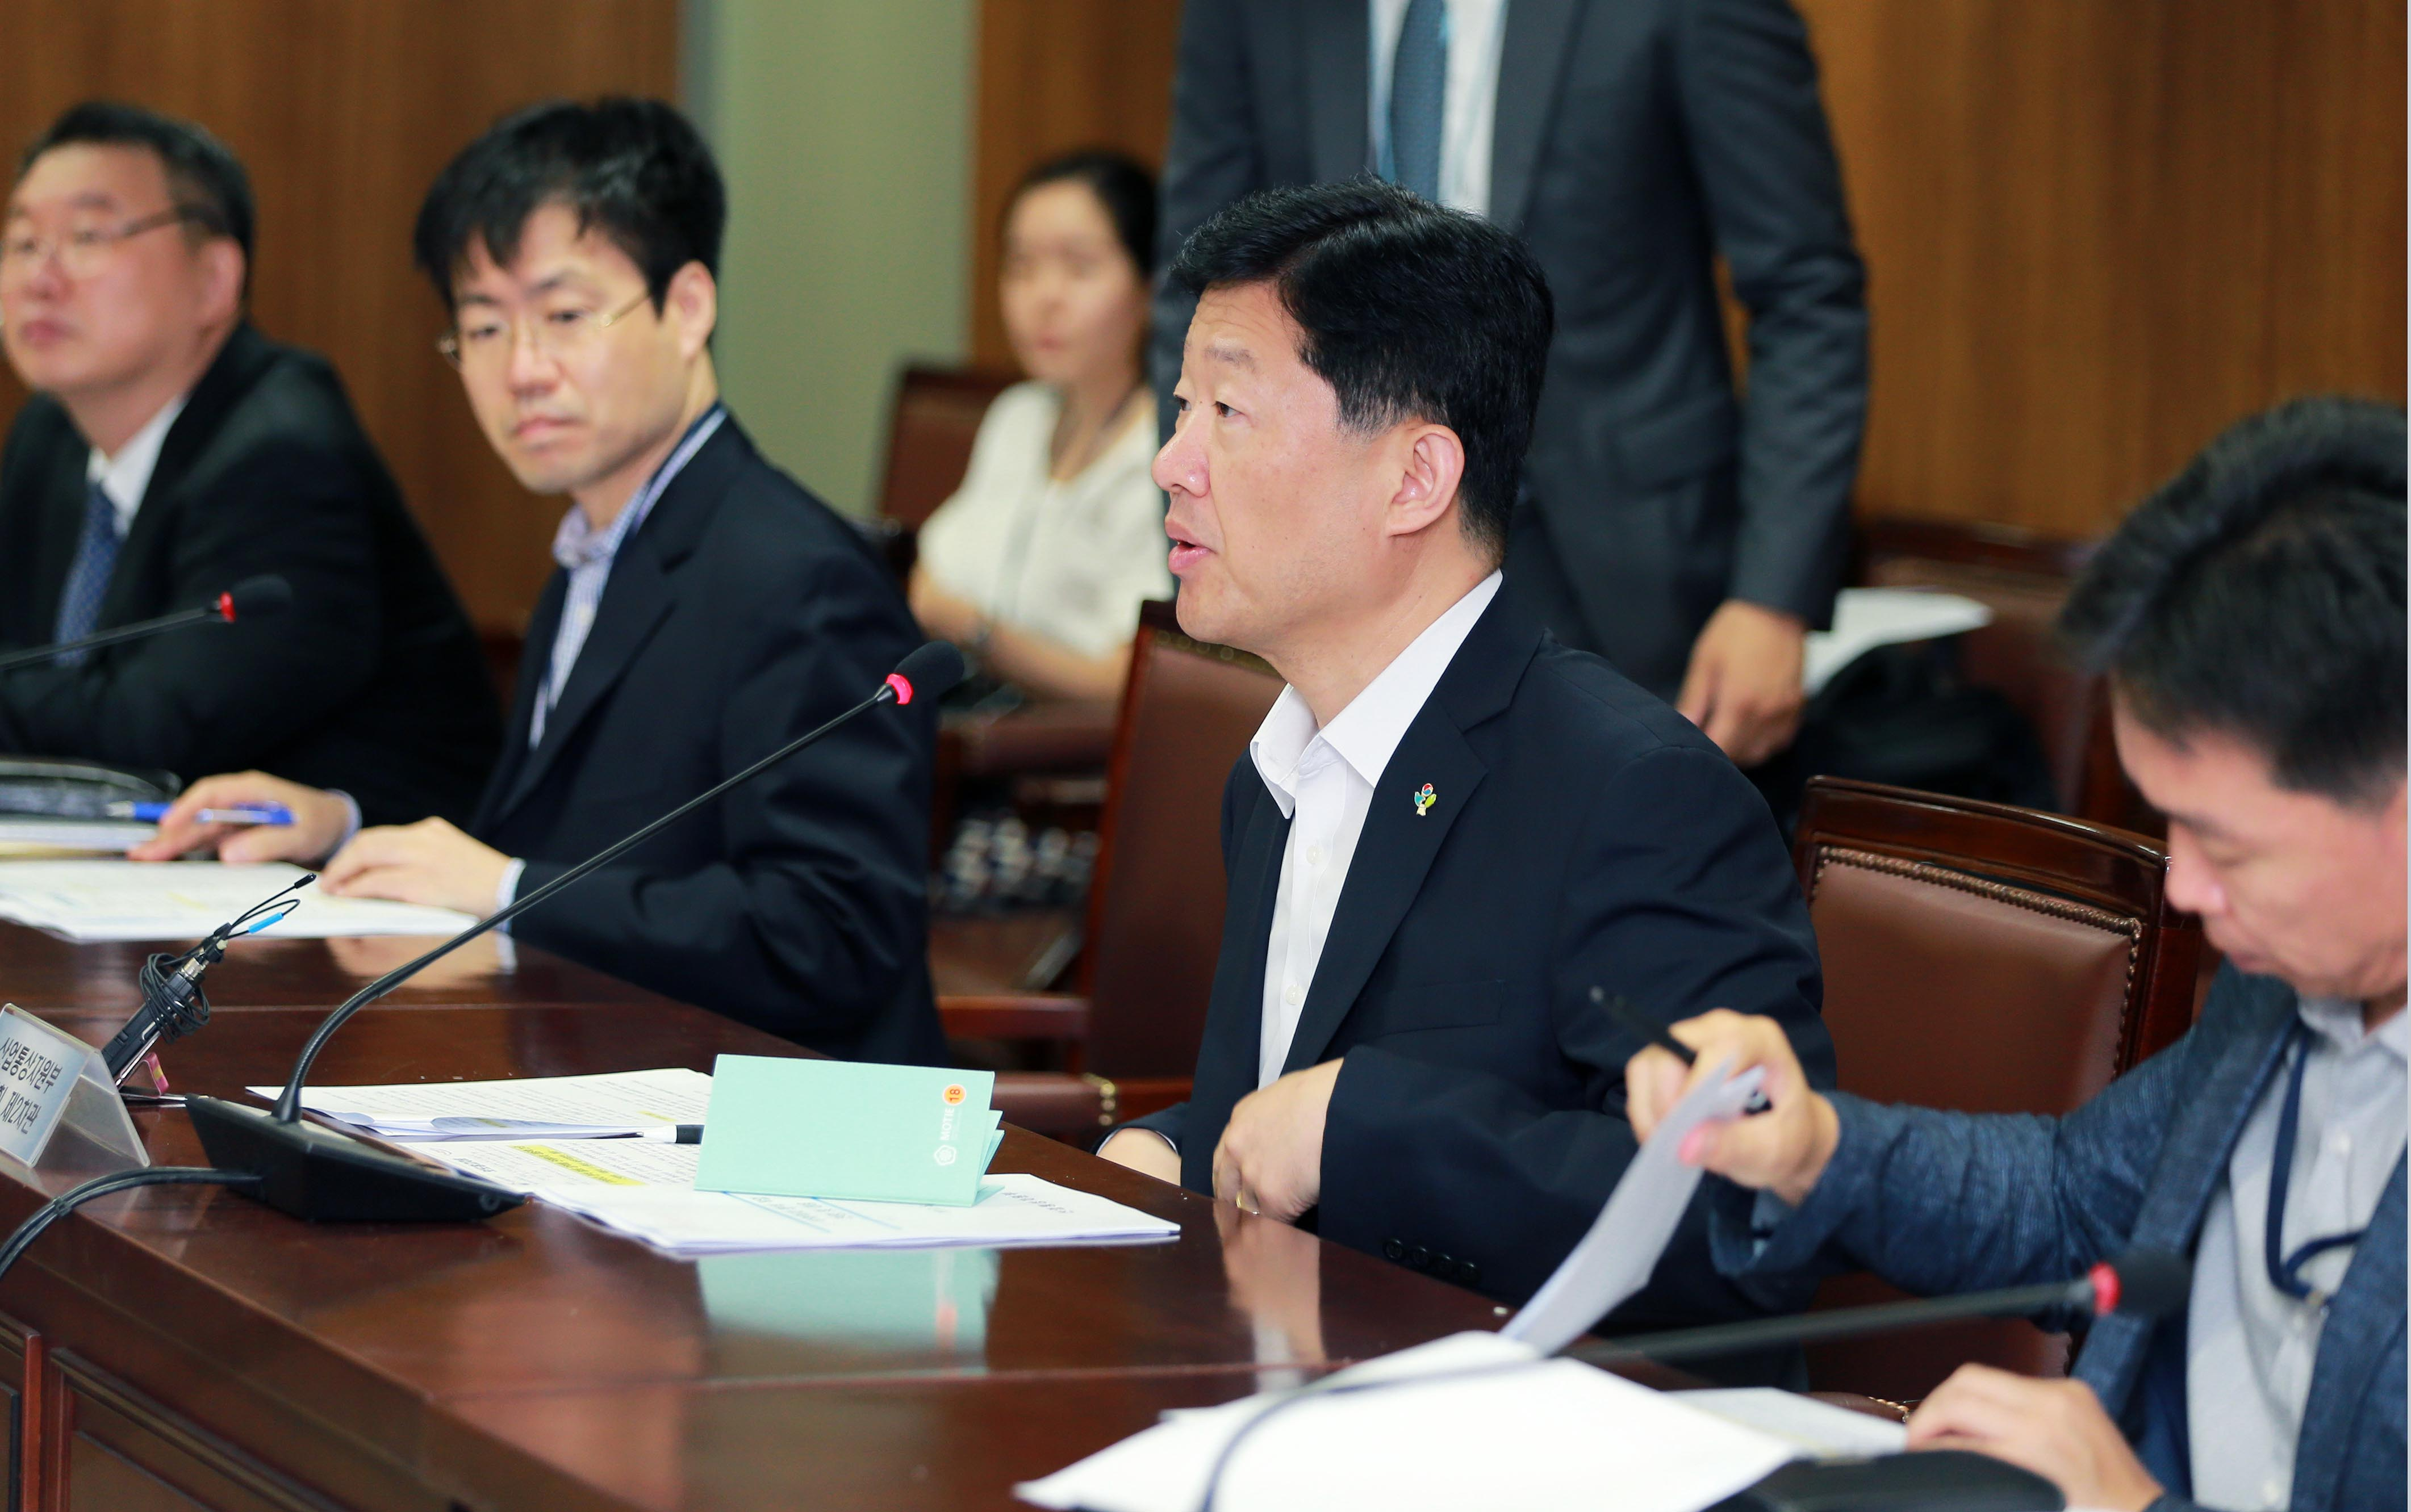 Vice Minister Woo presides 8th meeting of working group for Korea-US trade